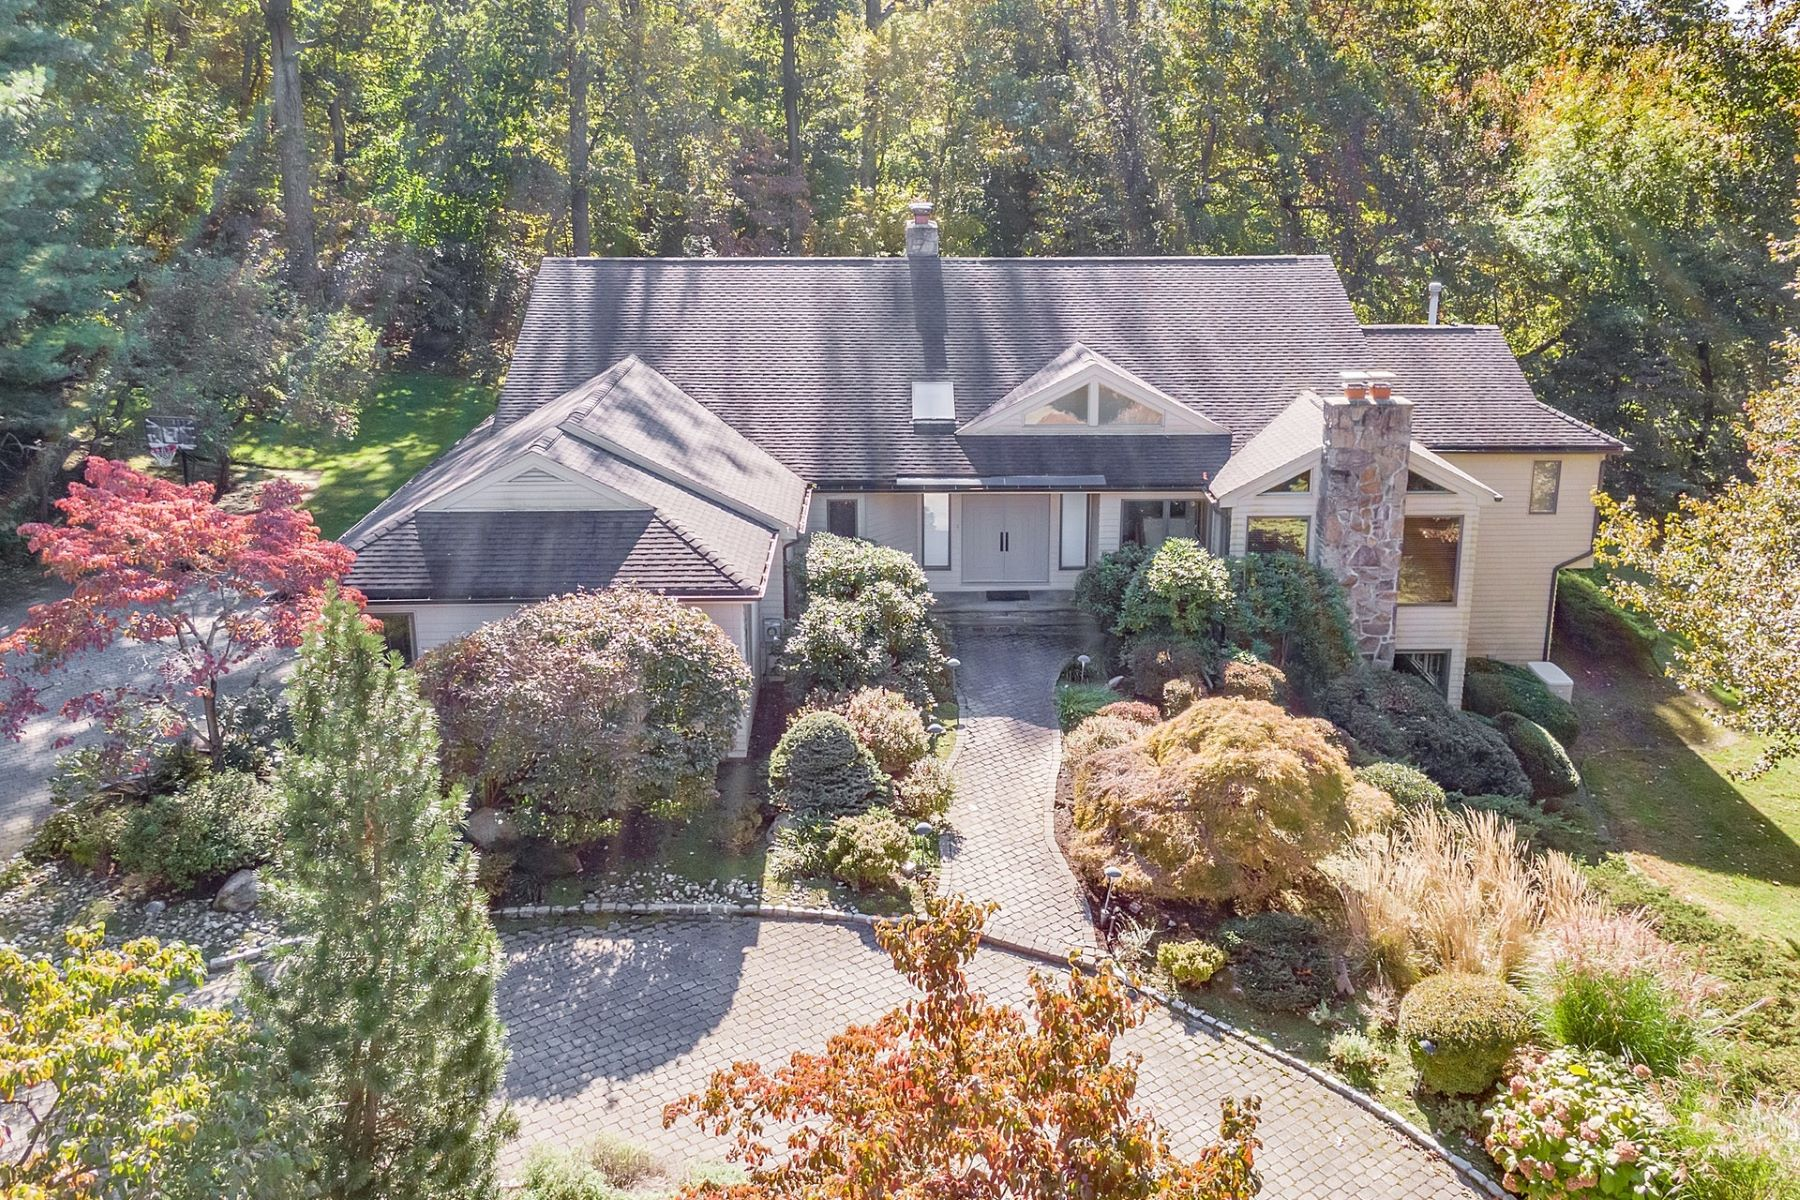 Single Family Home for Sale at Elegant Ranch 15 Johnson Court, Cresskill, New Jersey 07626 United States